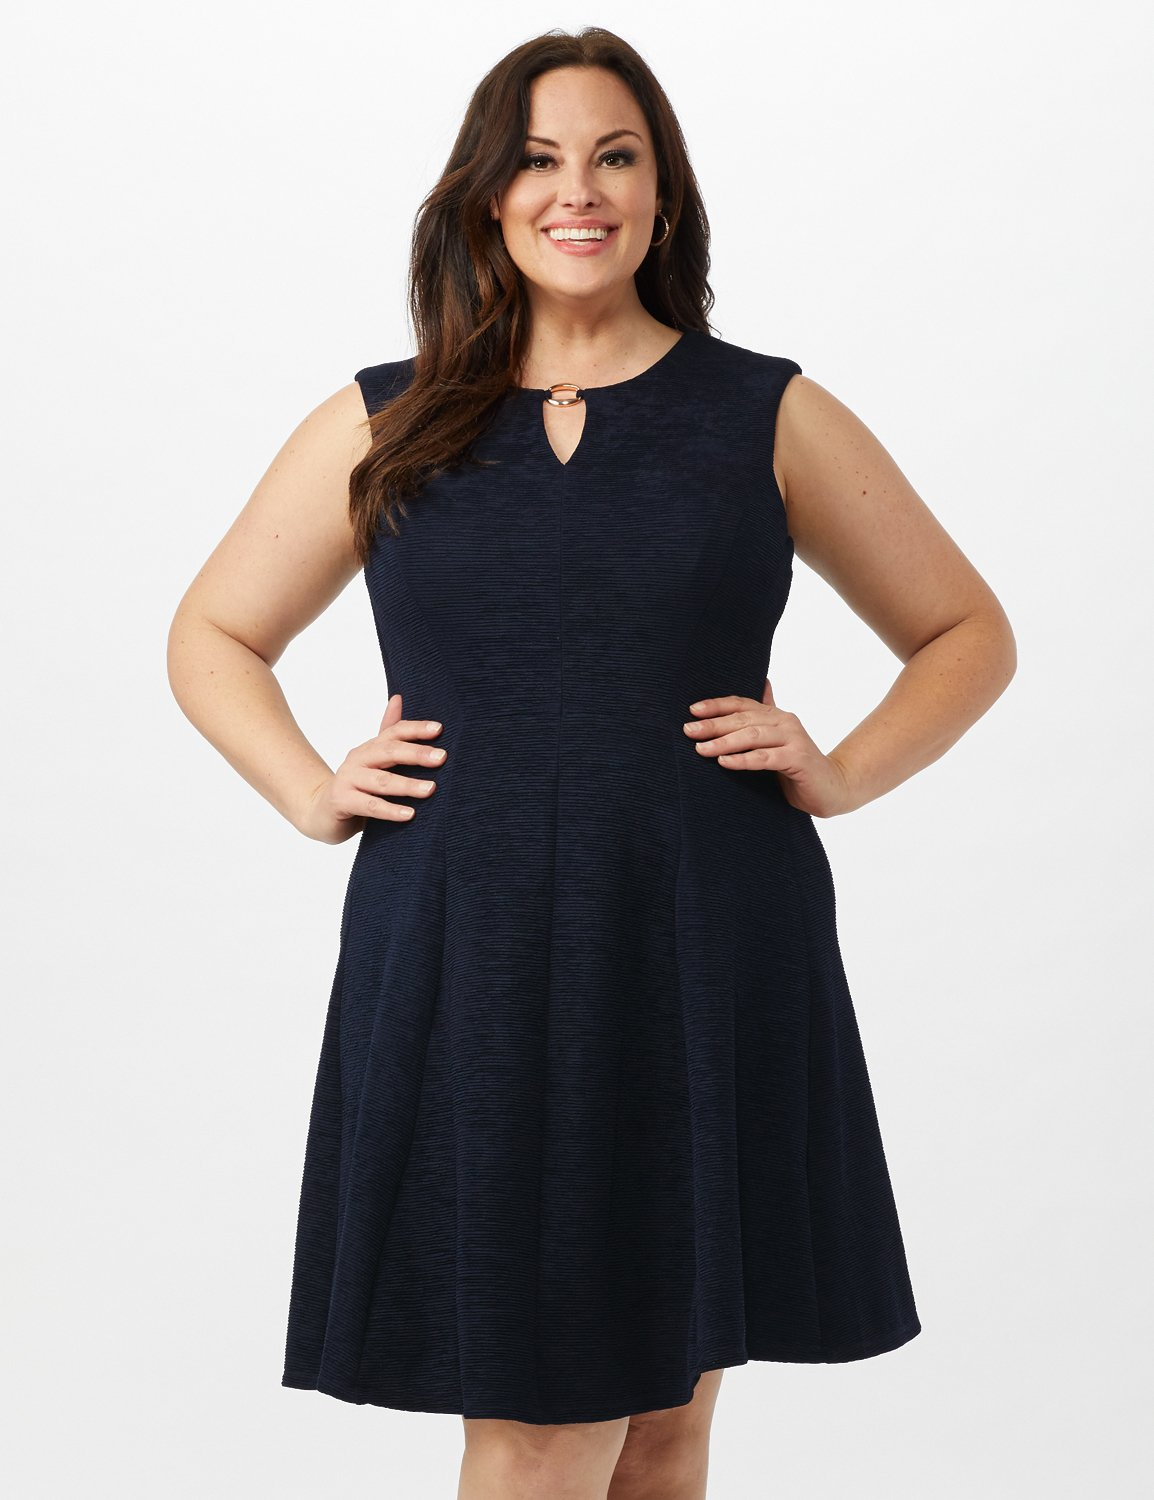 Sleeveless Textured Knit Key Hole Neck with Ring Dress -Navy - Front